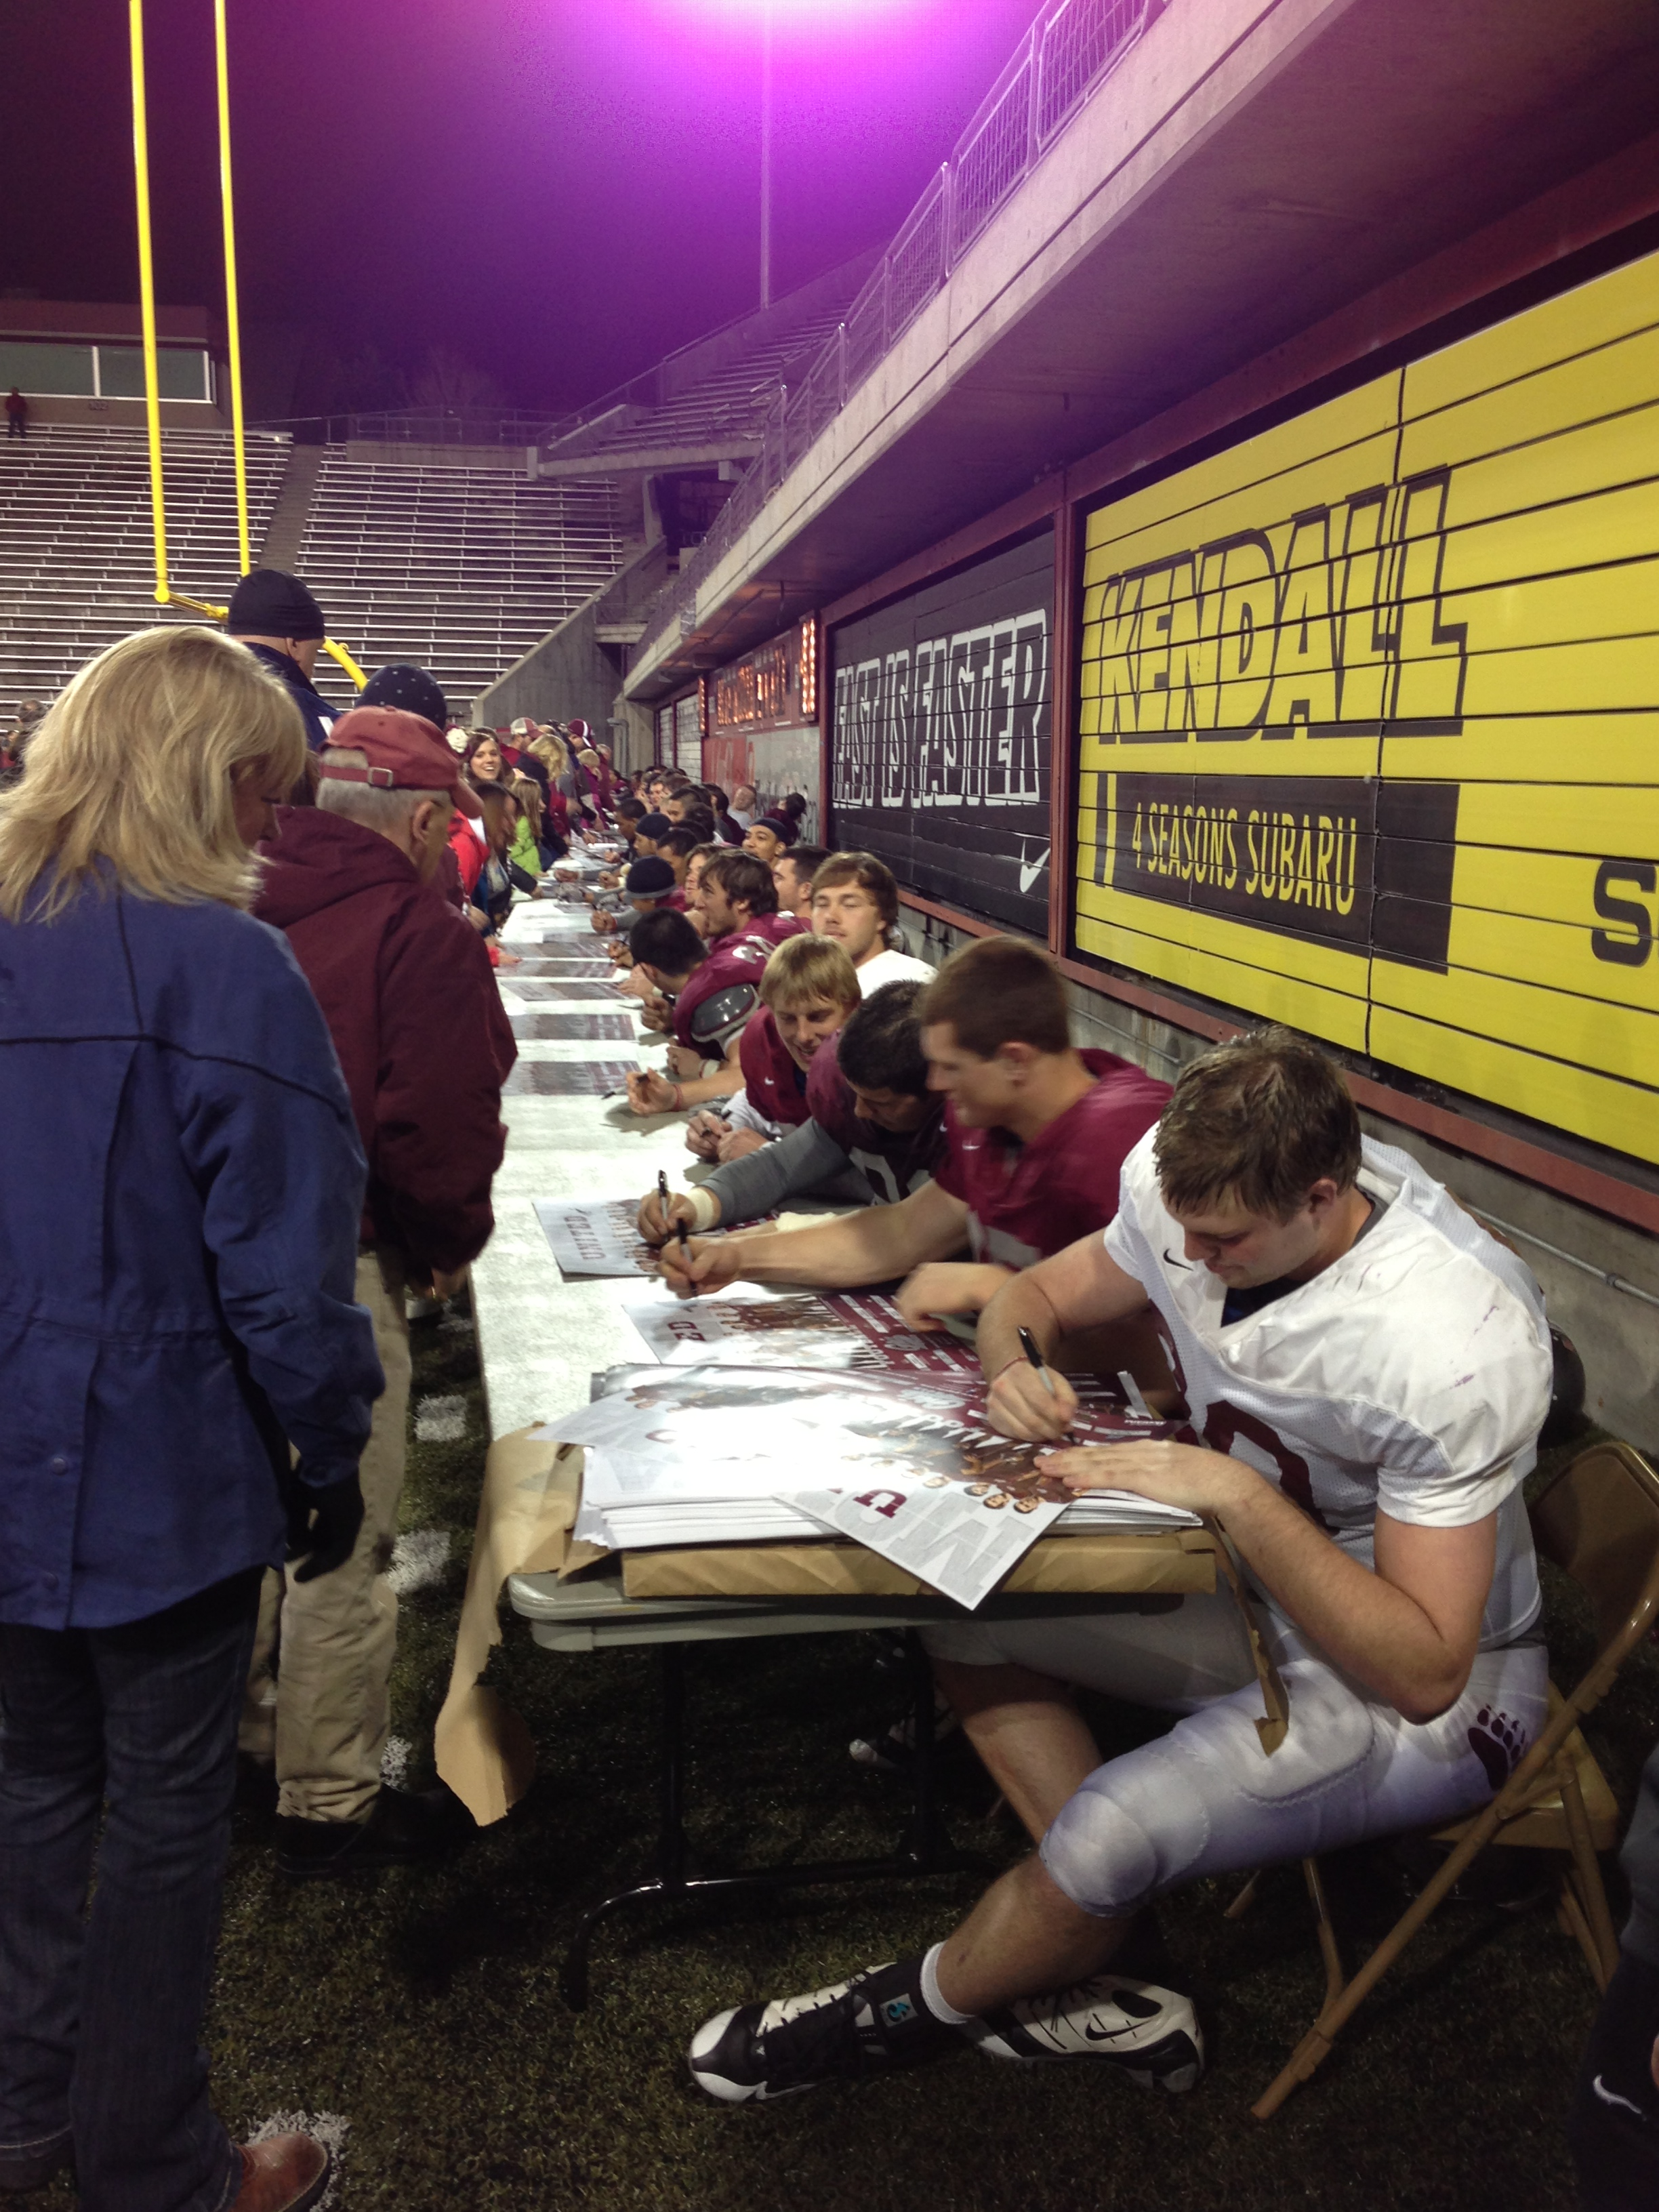 The football team signs autographs under the lights.